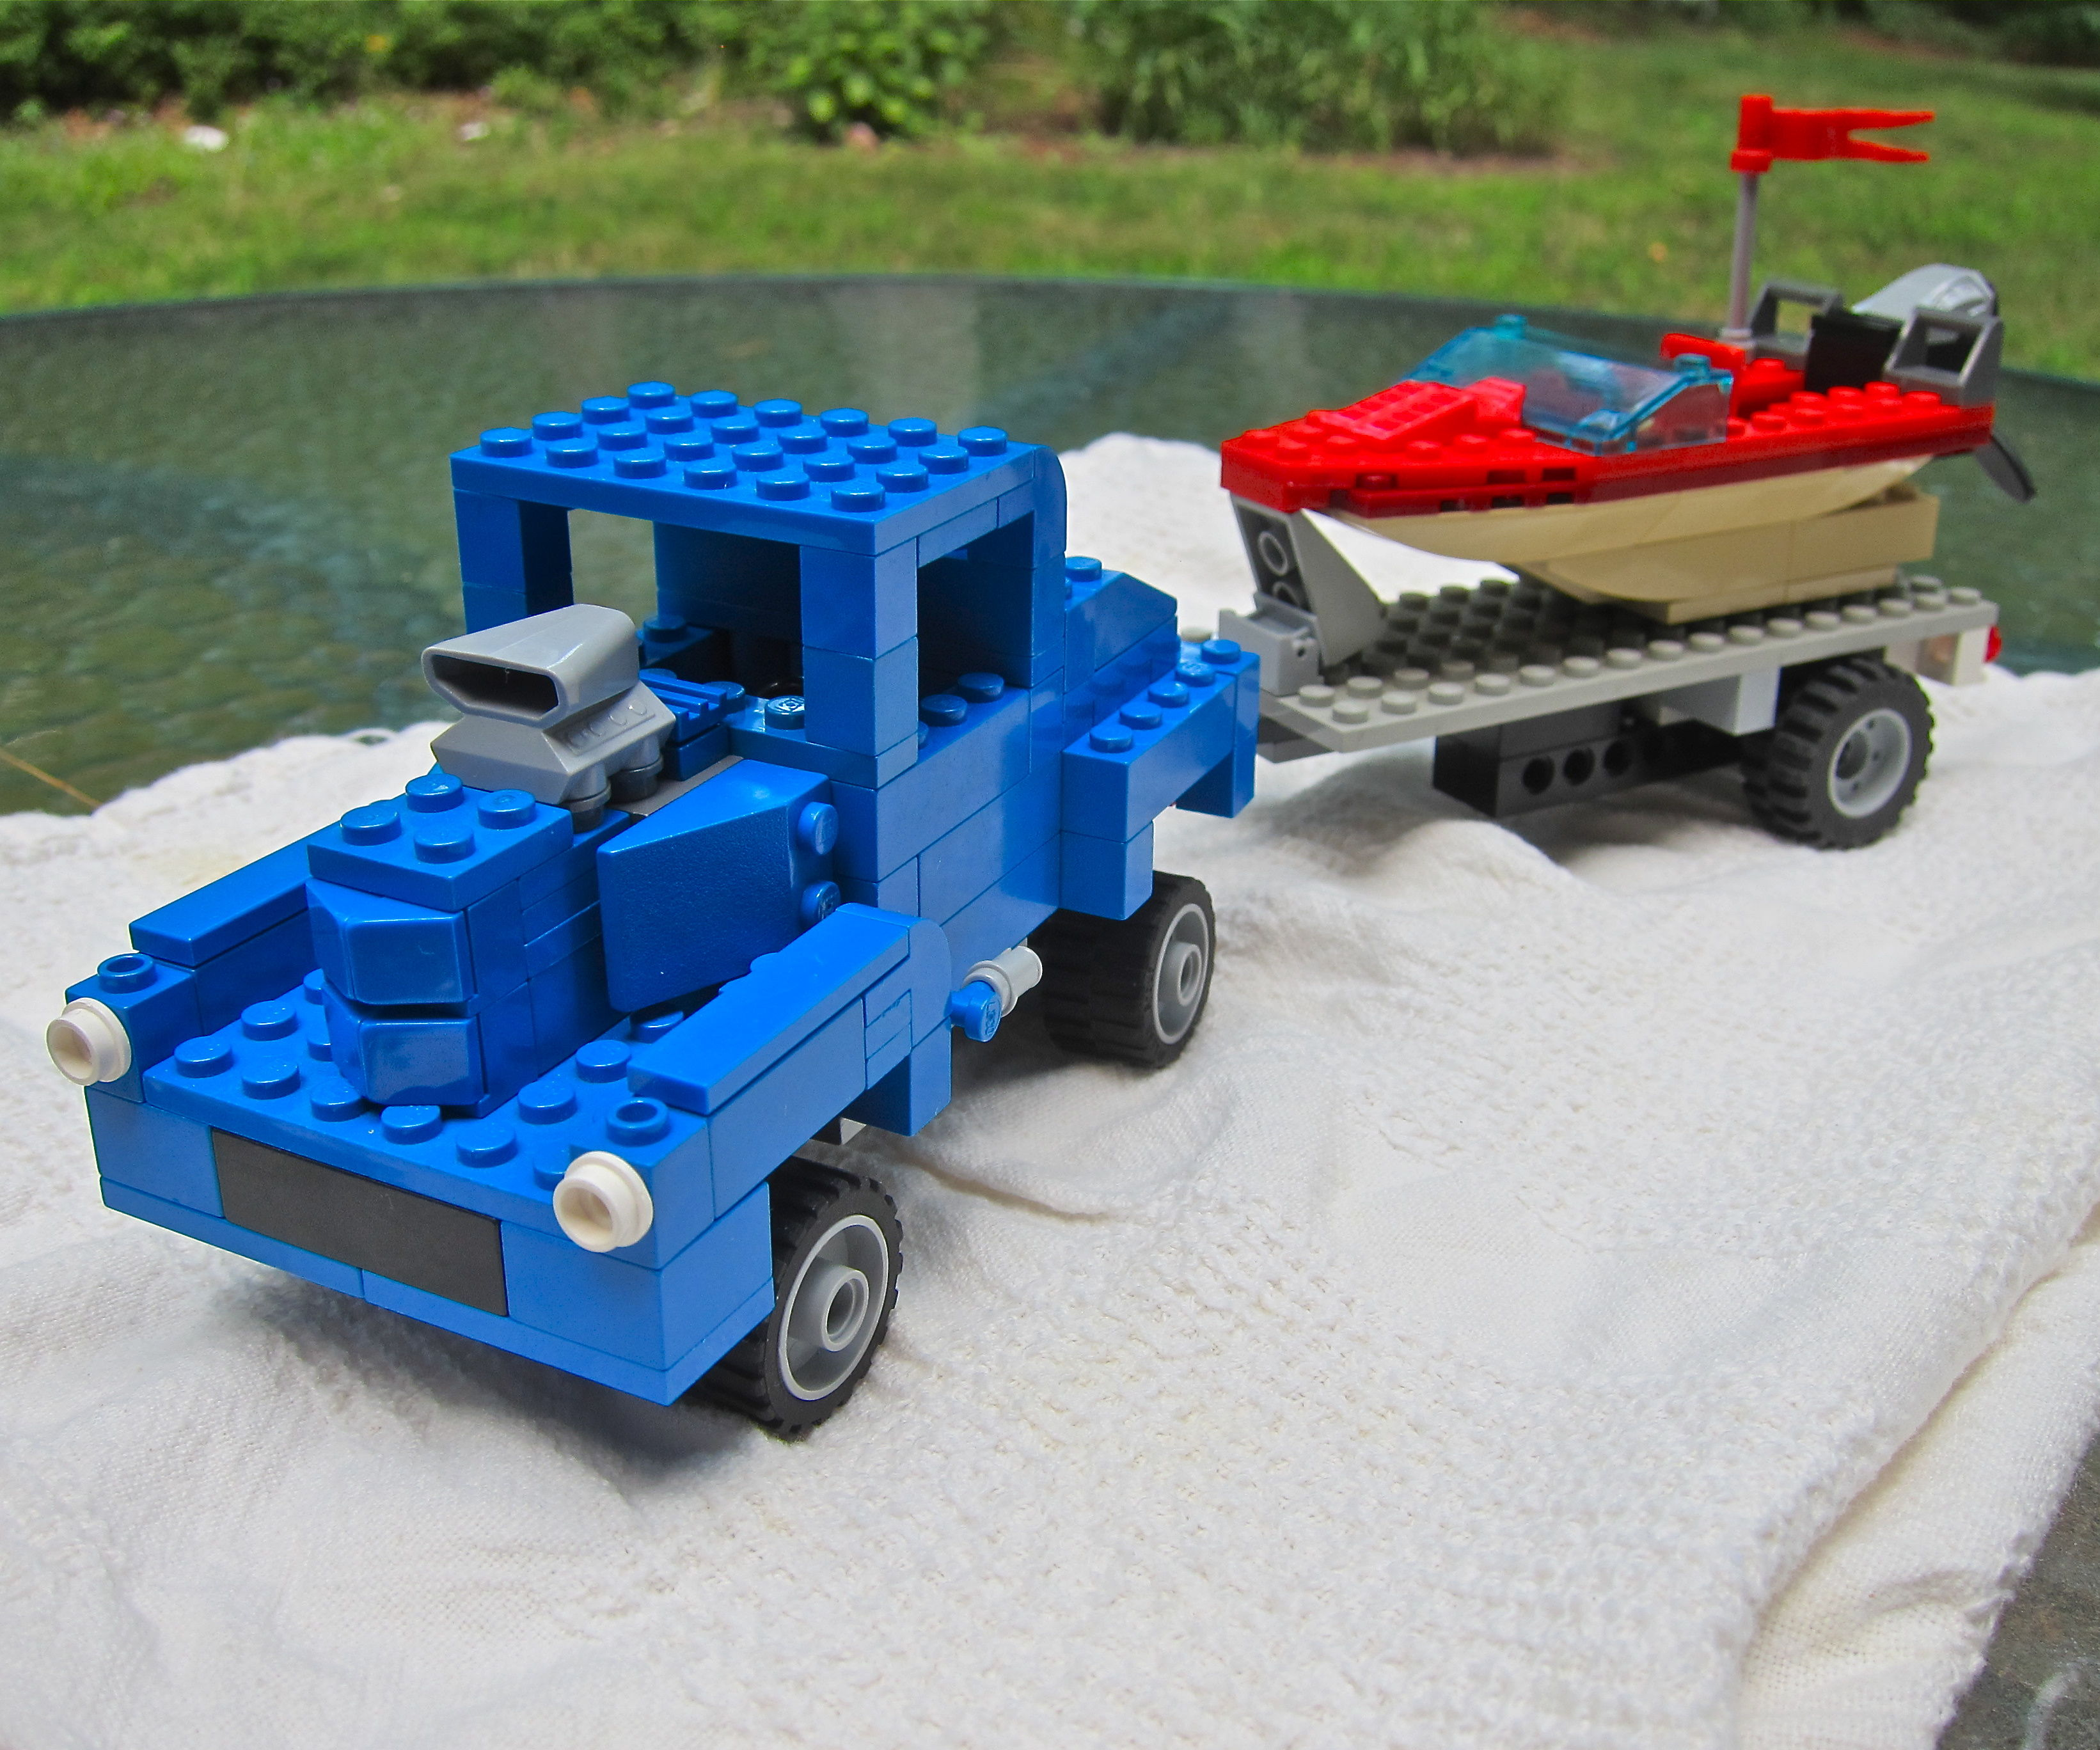 LEGO '40 Willys street rod with speed boat and trailer